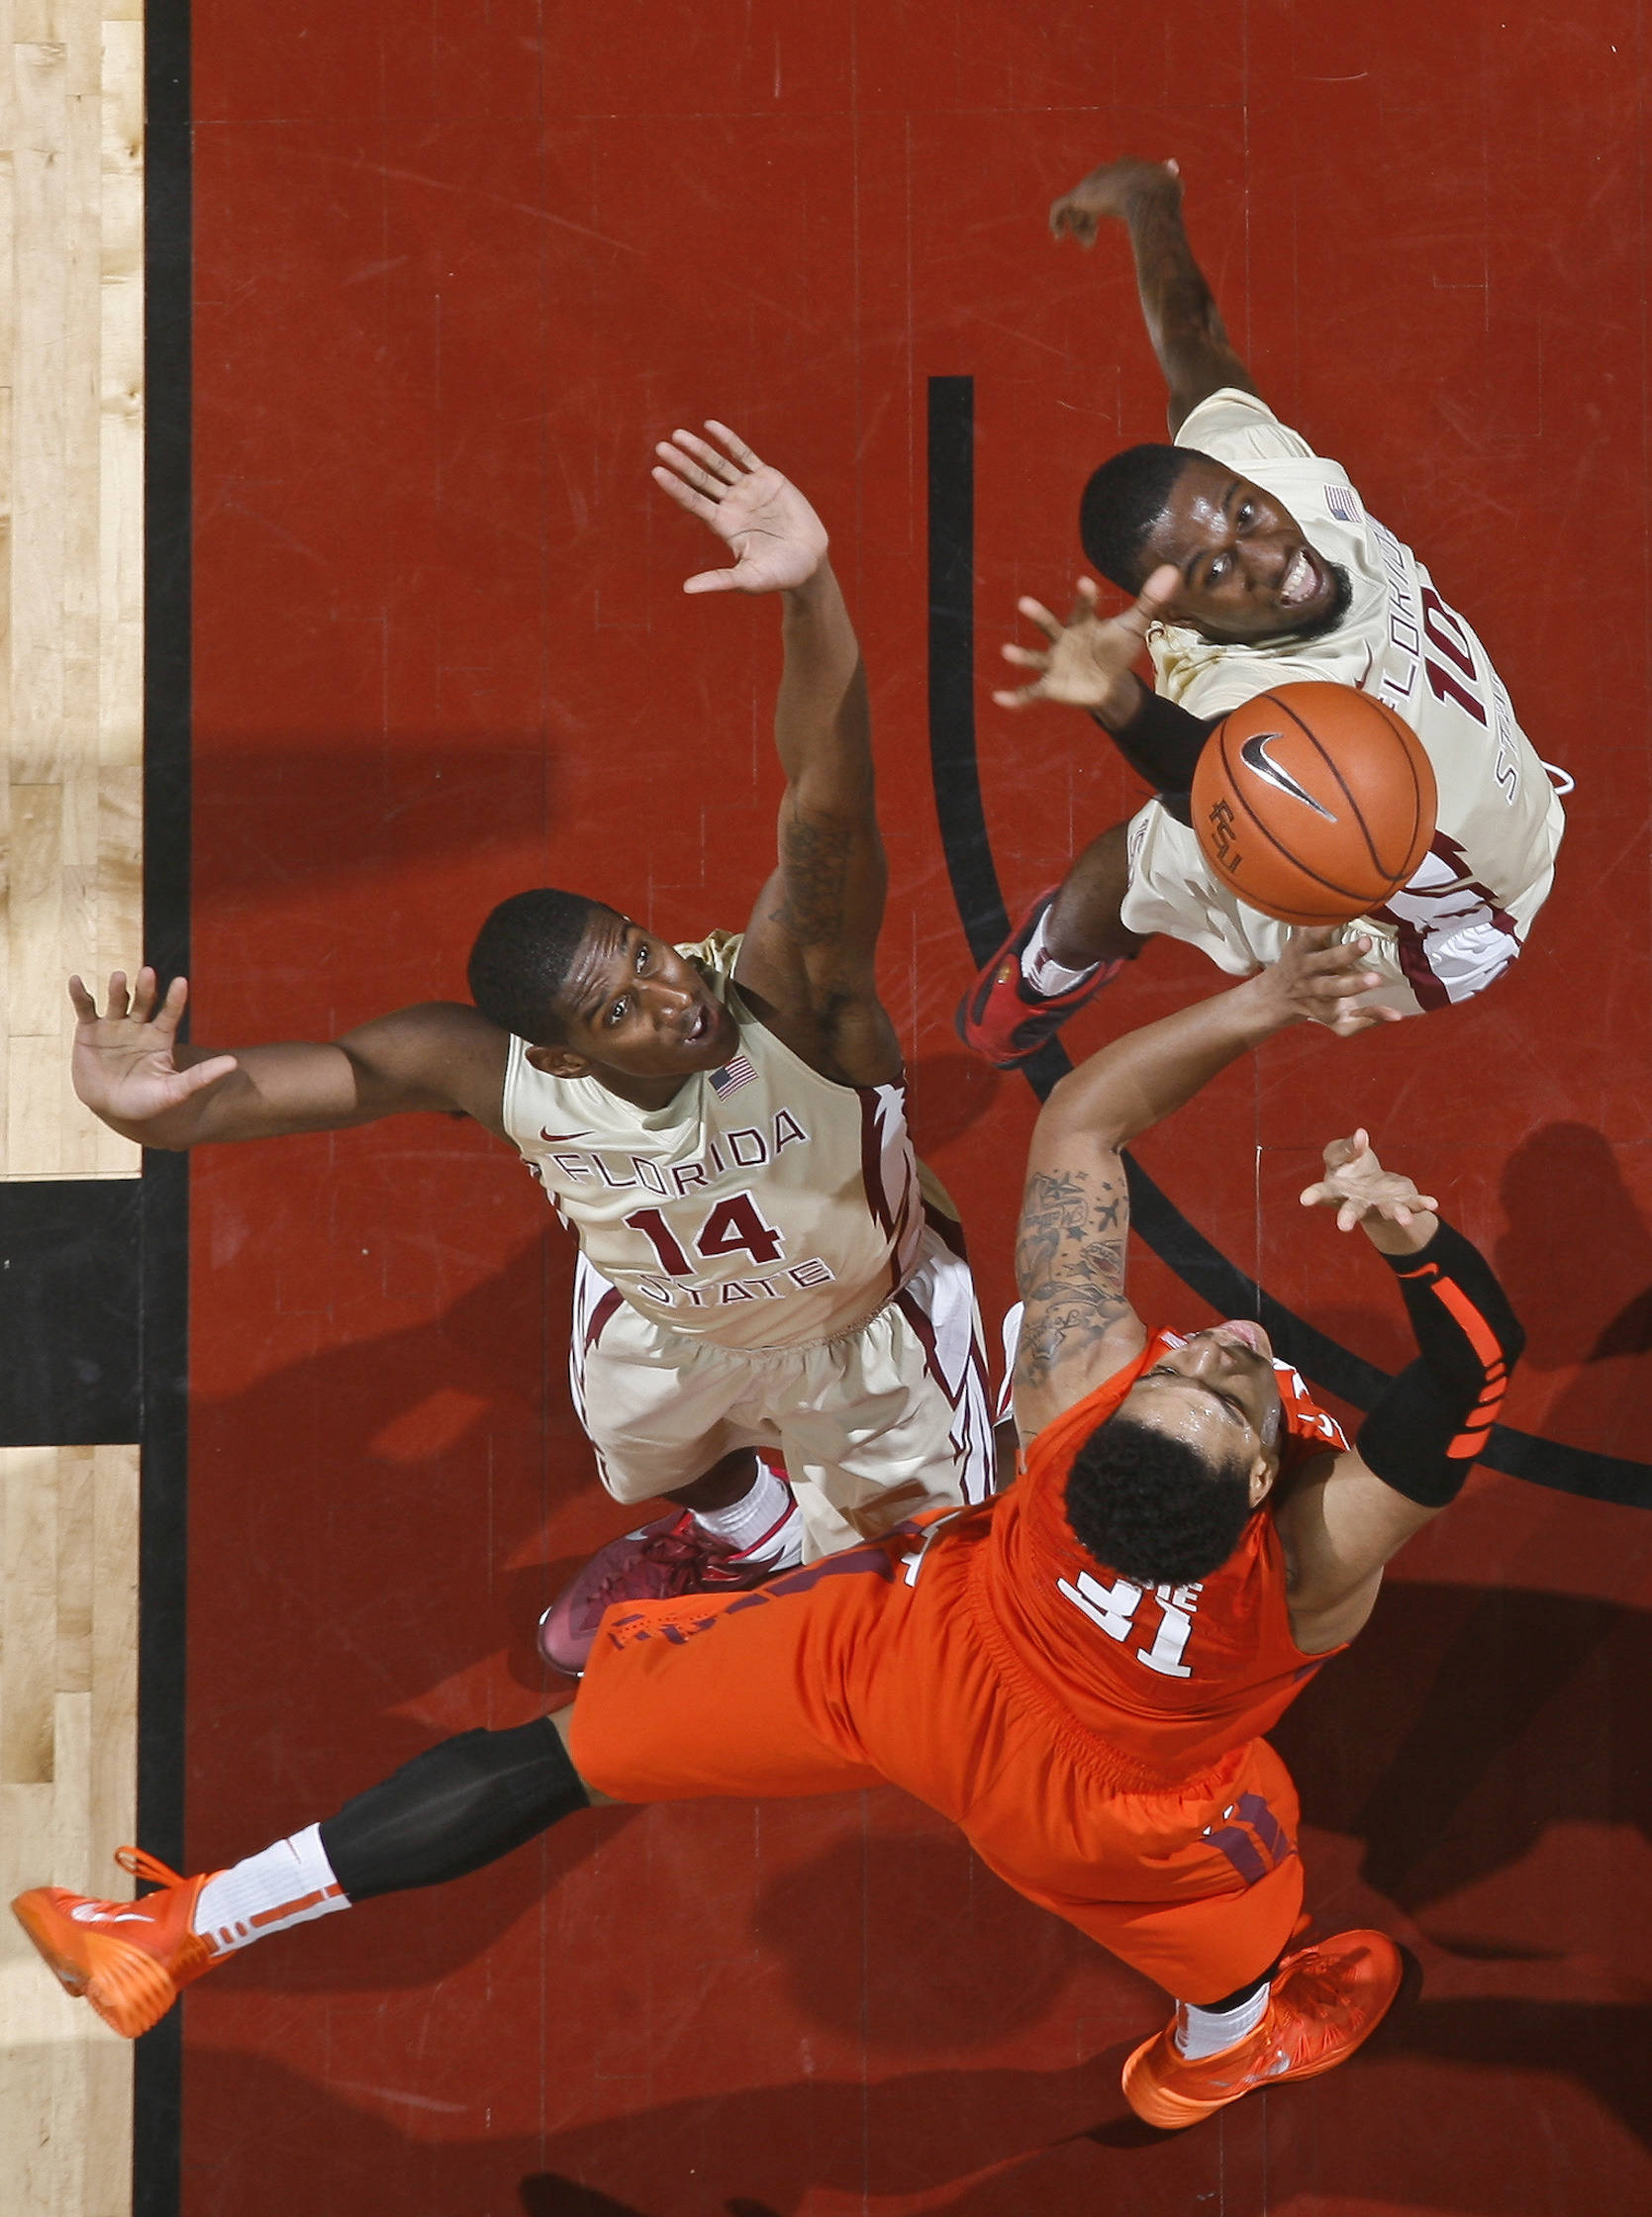 Feb 5, 2014; Tallahassee, FL, USA; Seminoles forward Okaro White (10) blocks the shot of Virginia Tech Hokies forward Jarell Eddie (31) in the first half. Phil Sears-USA TODAY Sports